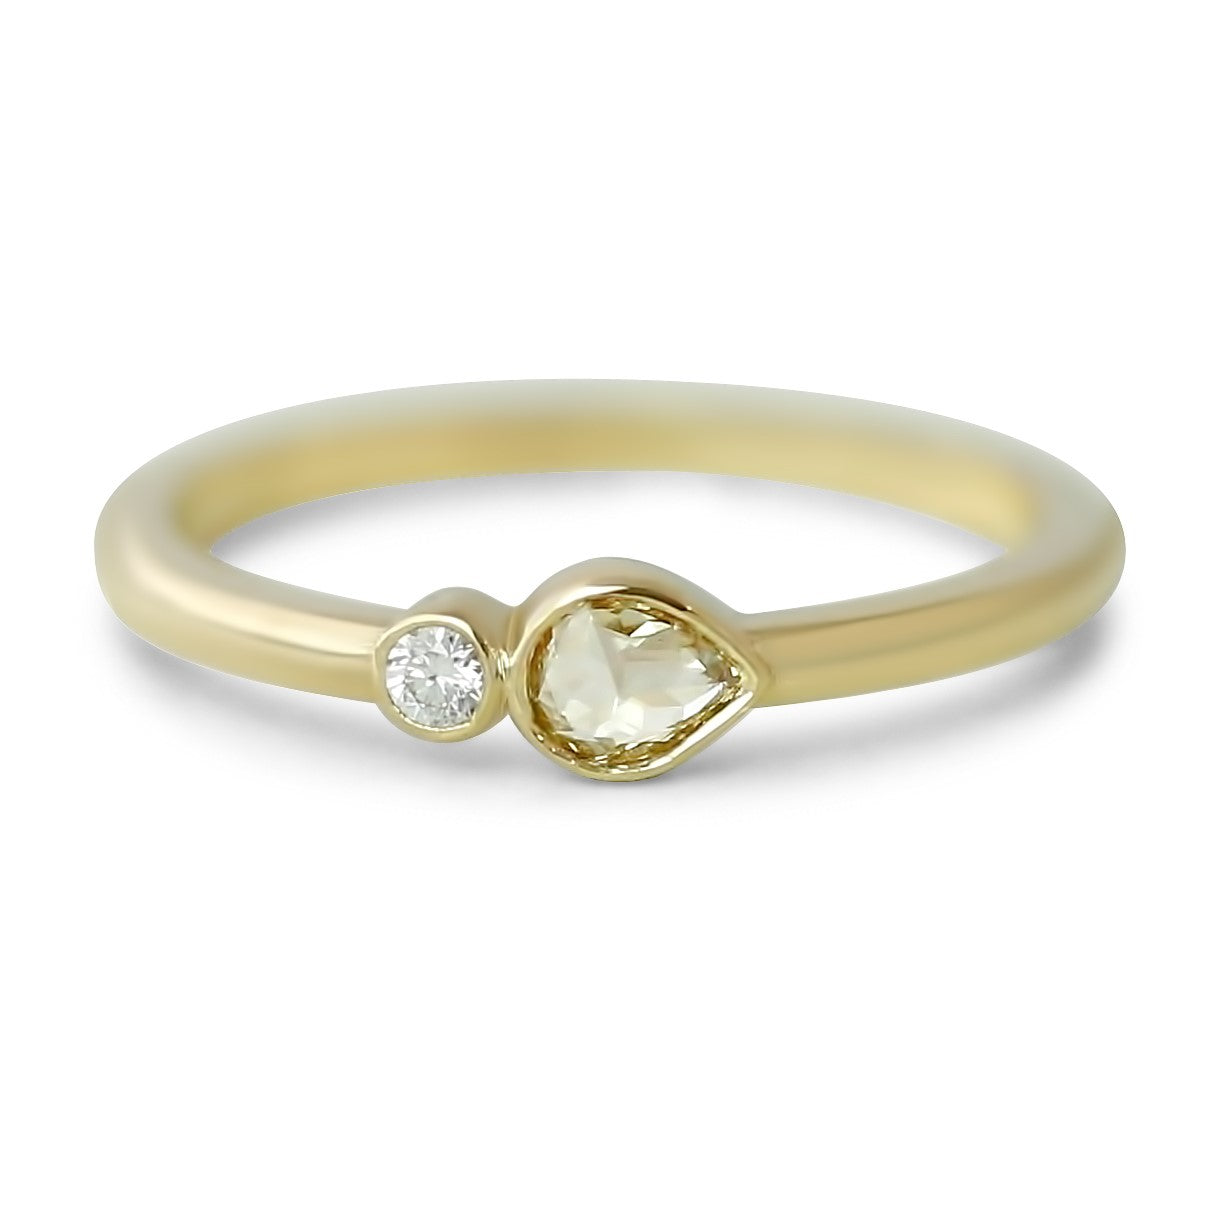 14k yellow gold rose cut pear and round diamond bezel set ring